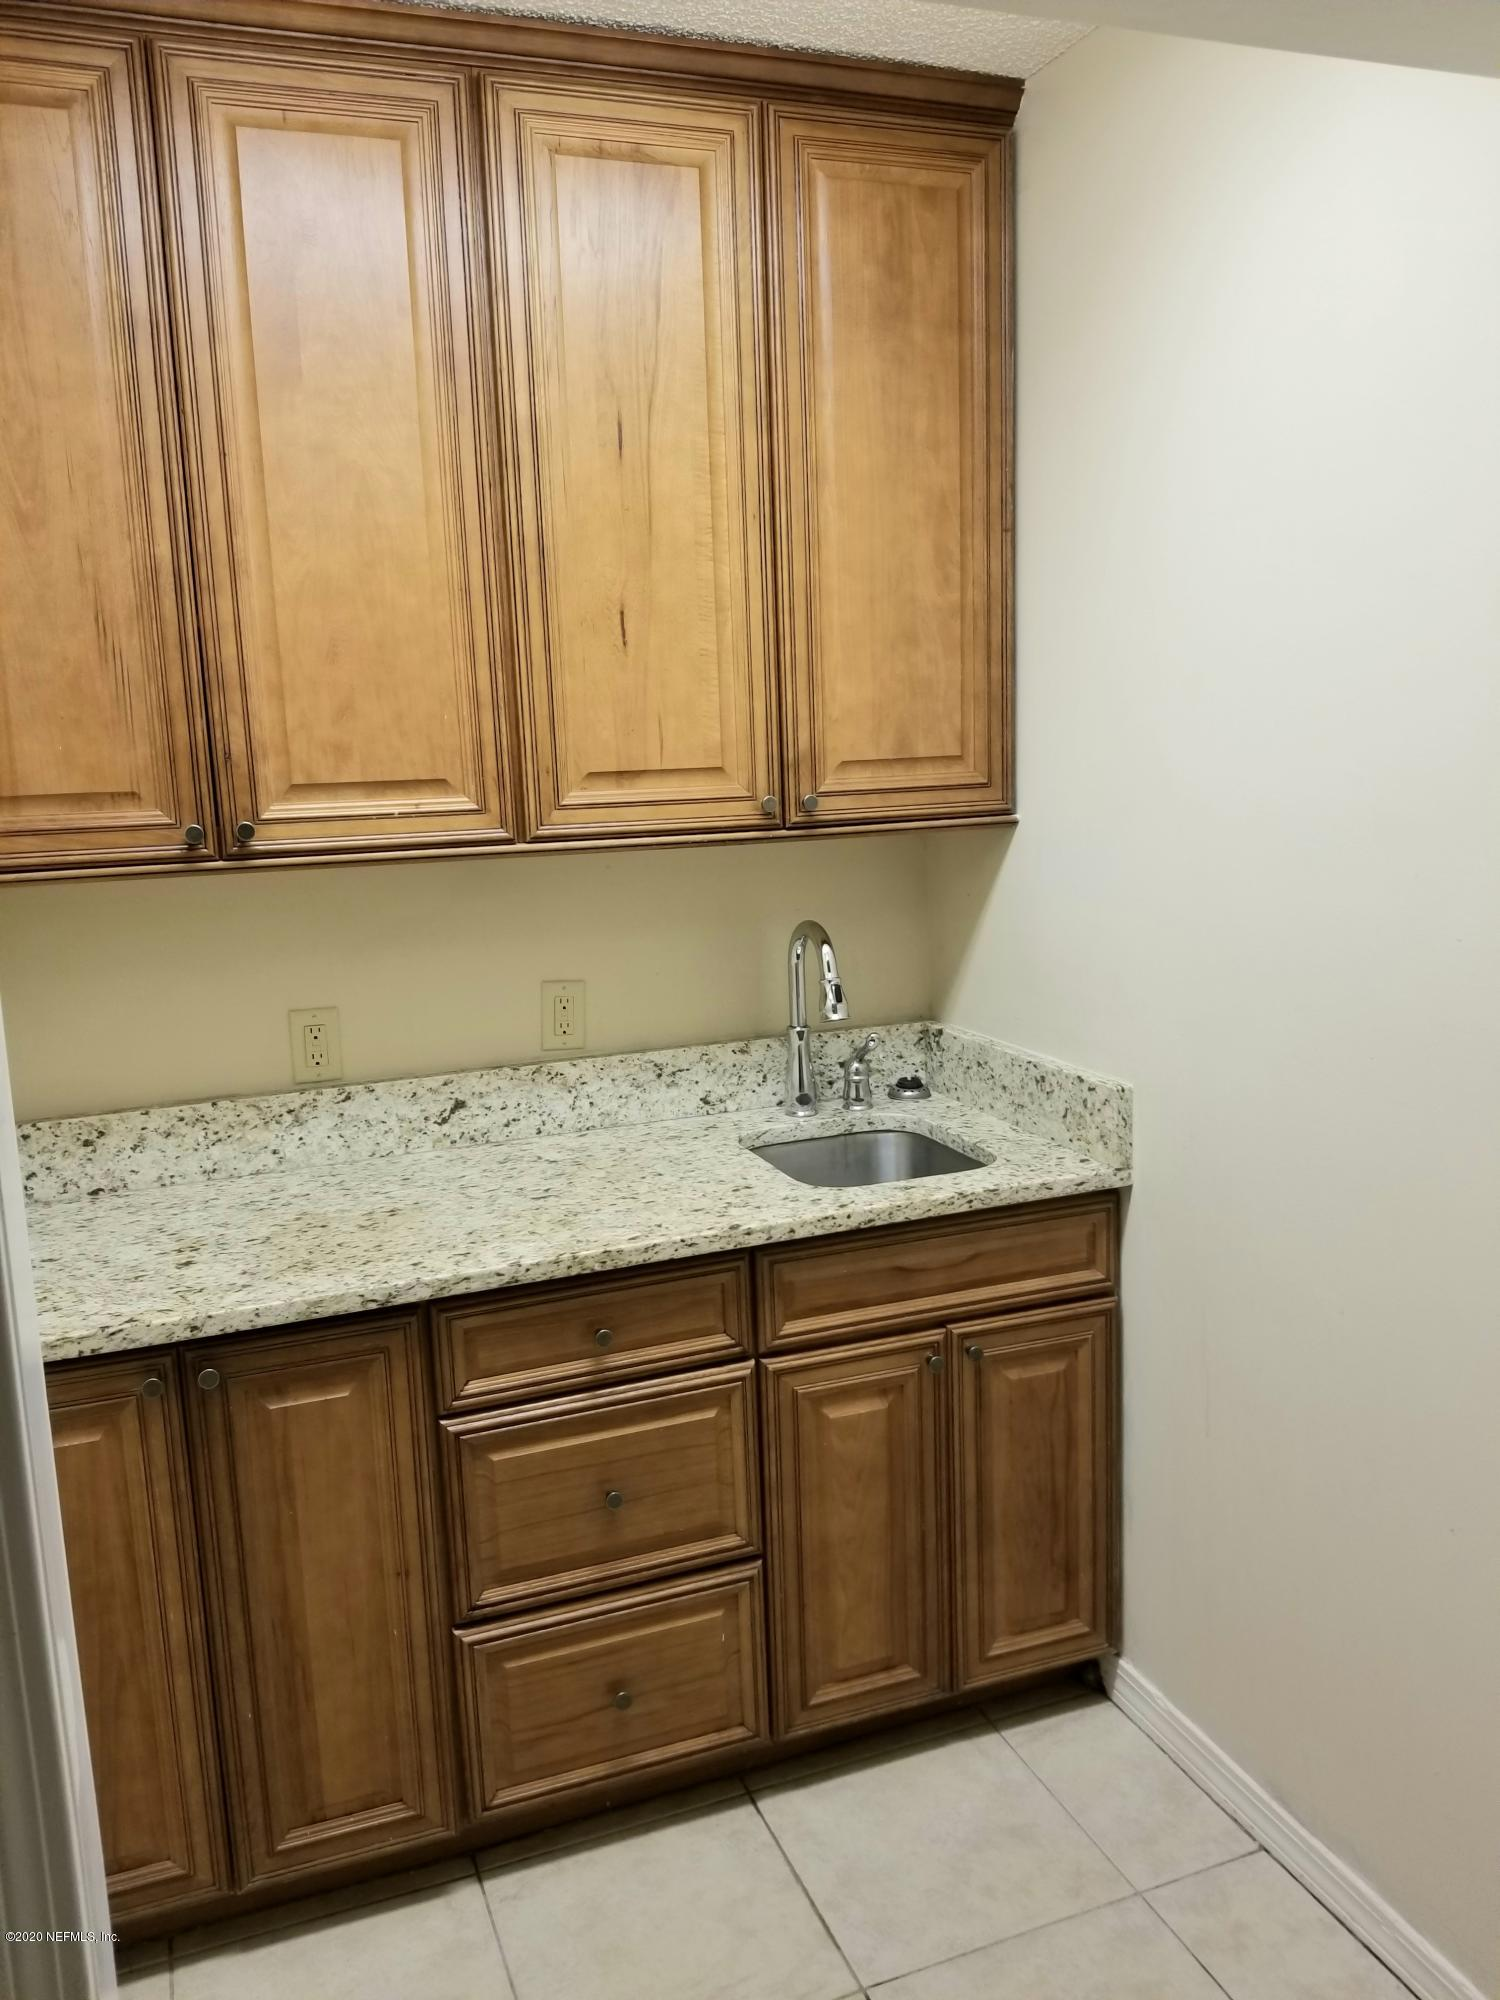 9086 CYPRESS GREEN, JACKSONVILLE, FLORIDA 32256, ,Commercial,For sale,CYPRESS GREEN,1056382